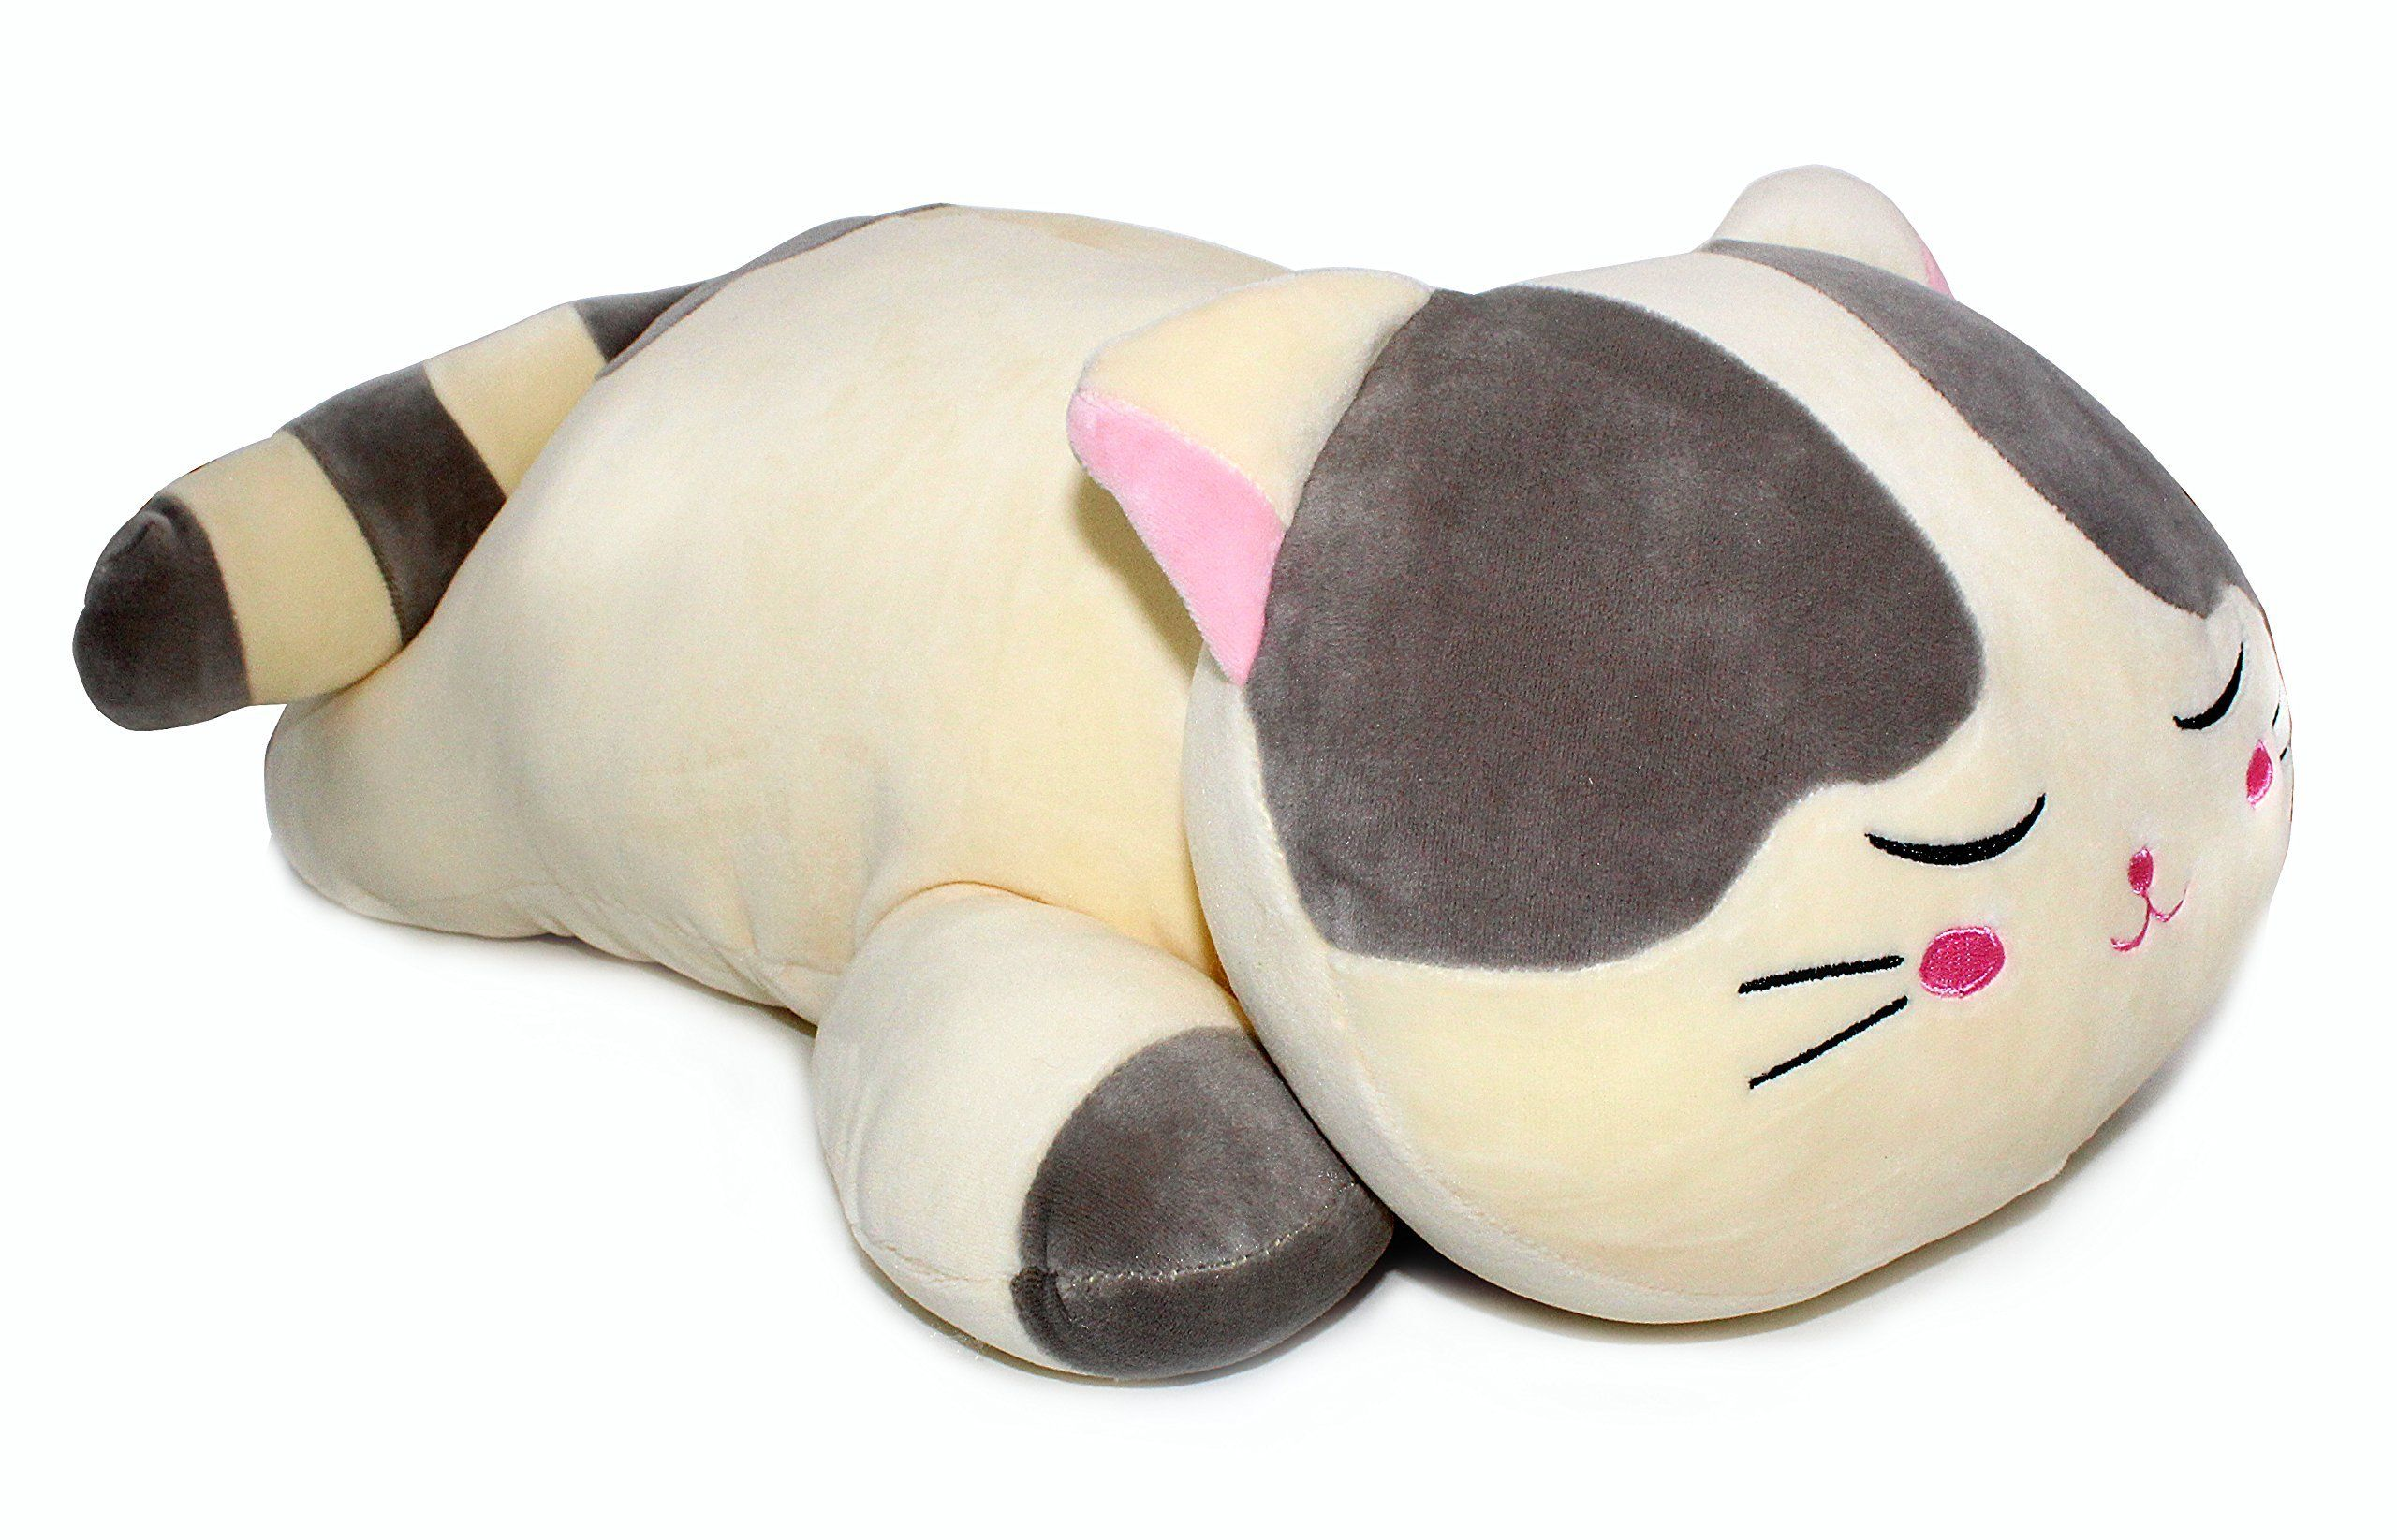 Vintoys Very Soft Cat Big Hugging Pillow Plush Kitten Kitty Stuffed Animals Gray 23 5 With Images Stuffed Animal Cat Animal Pillows Animal Plush Toys